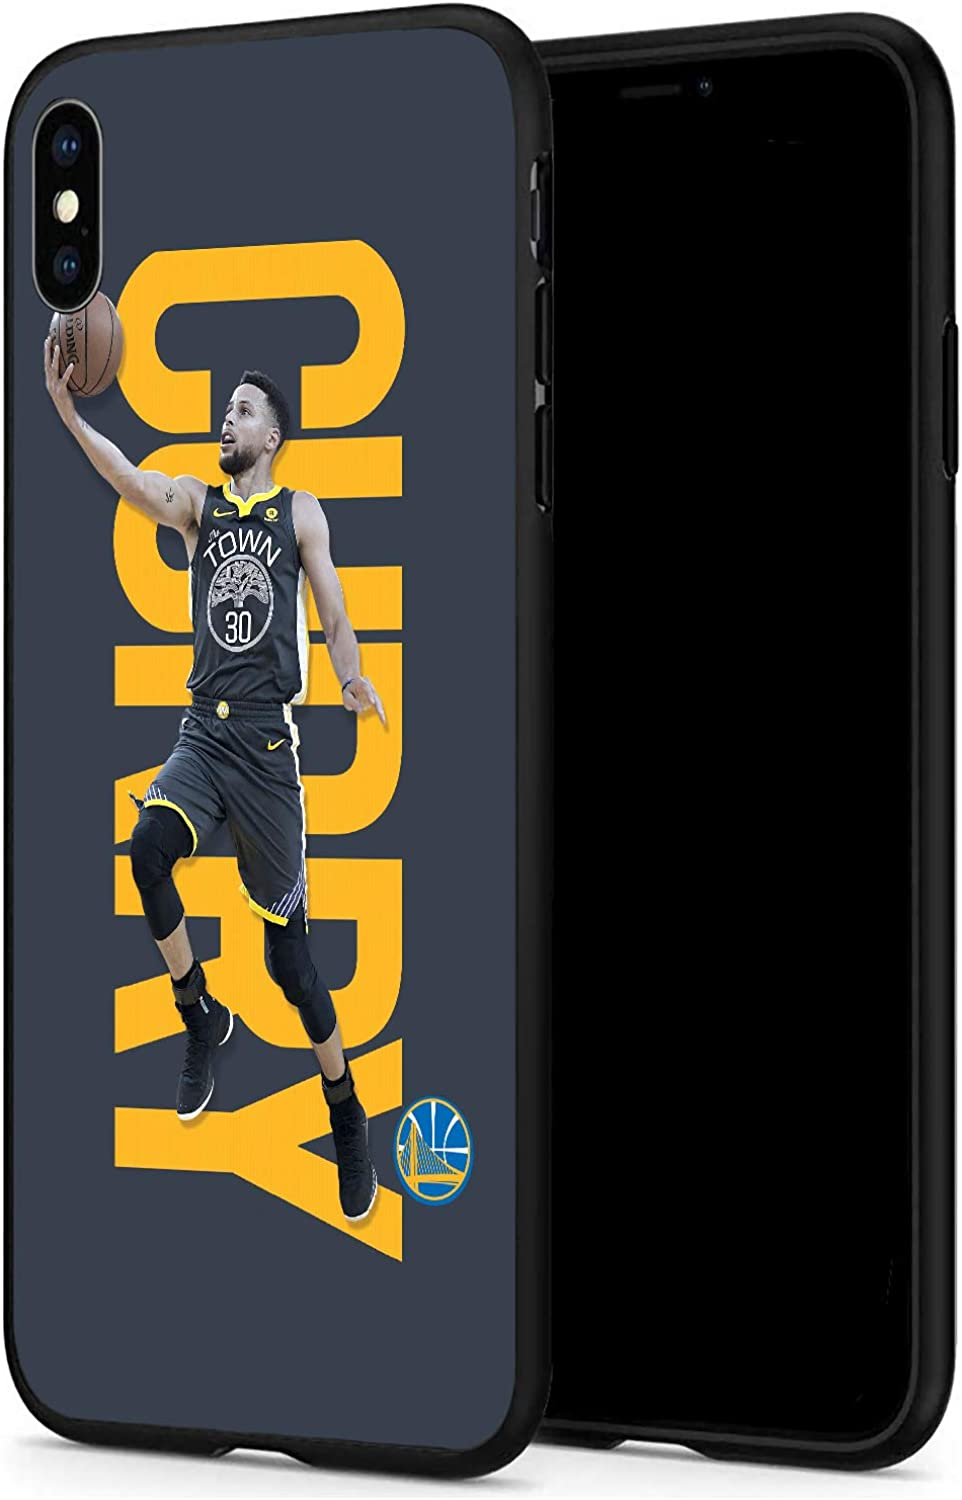 GONA iPhone XR Case for Basketball Fans, Soft Silicone Protective Thin Case Compatible with iPhone XR (ONLY)